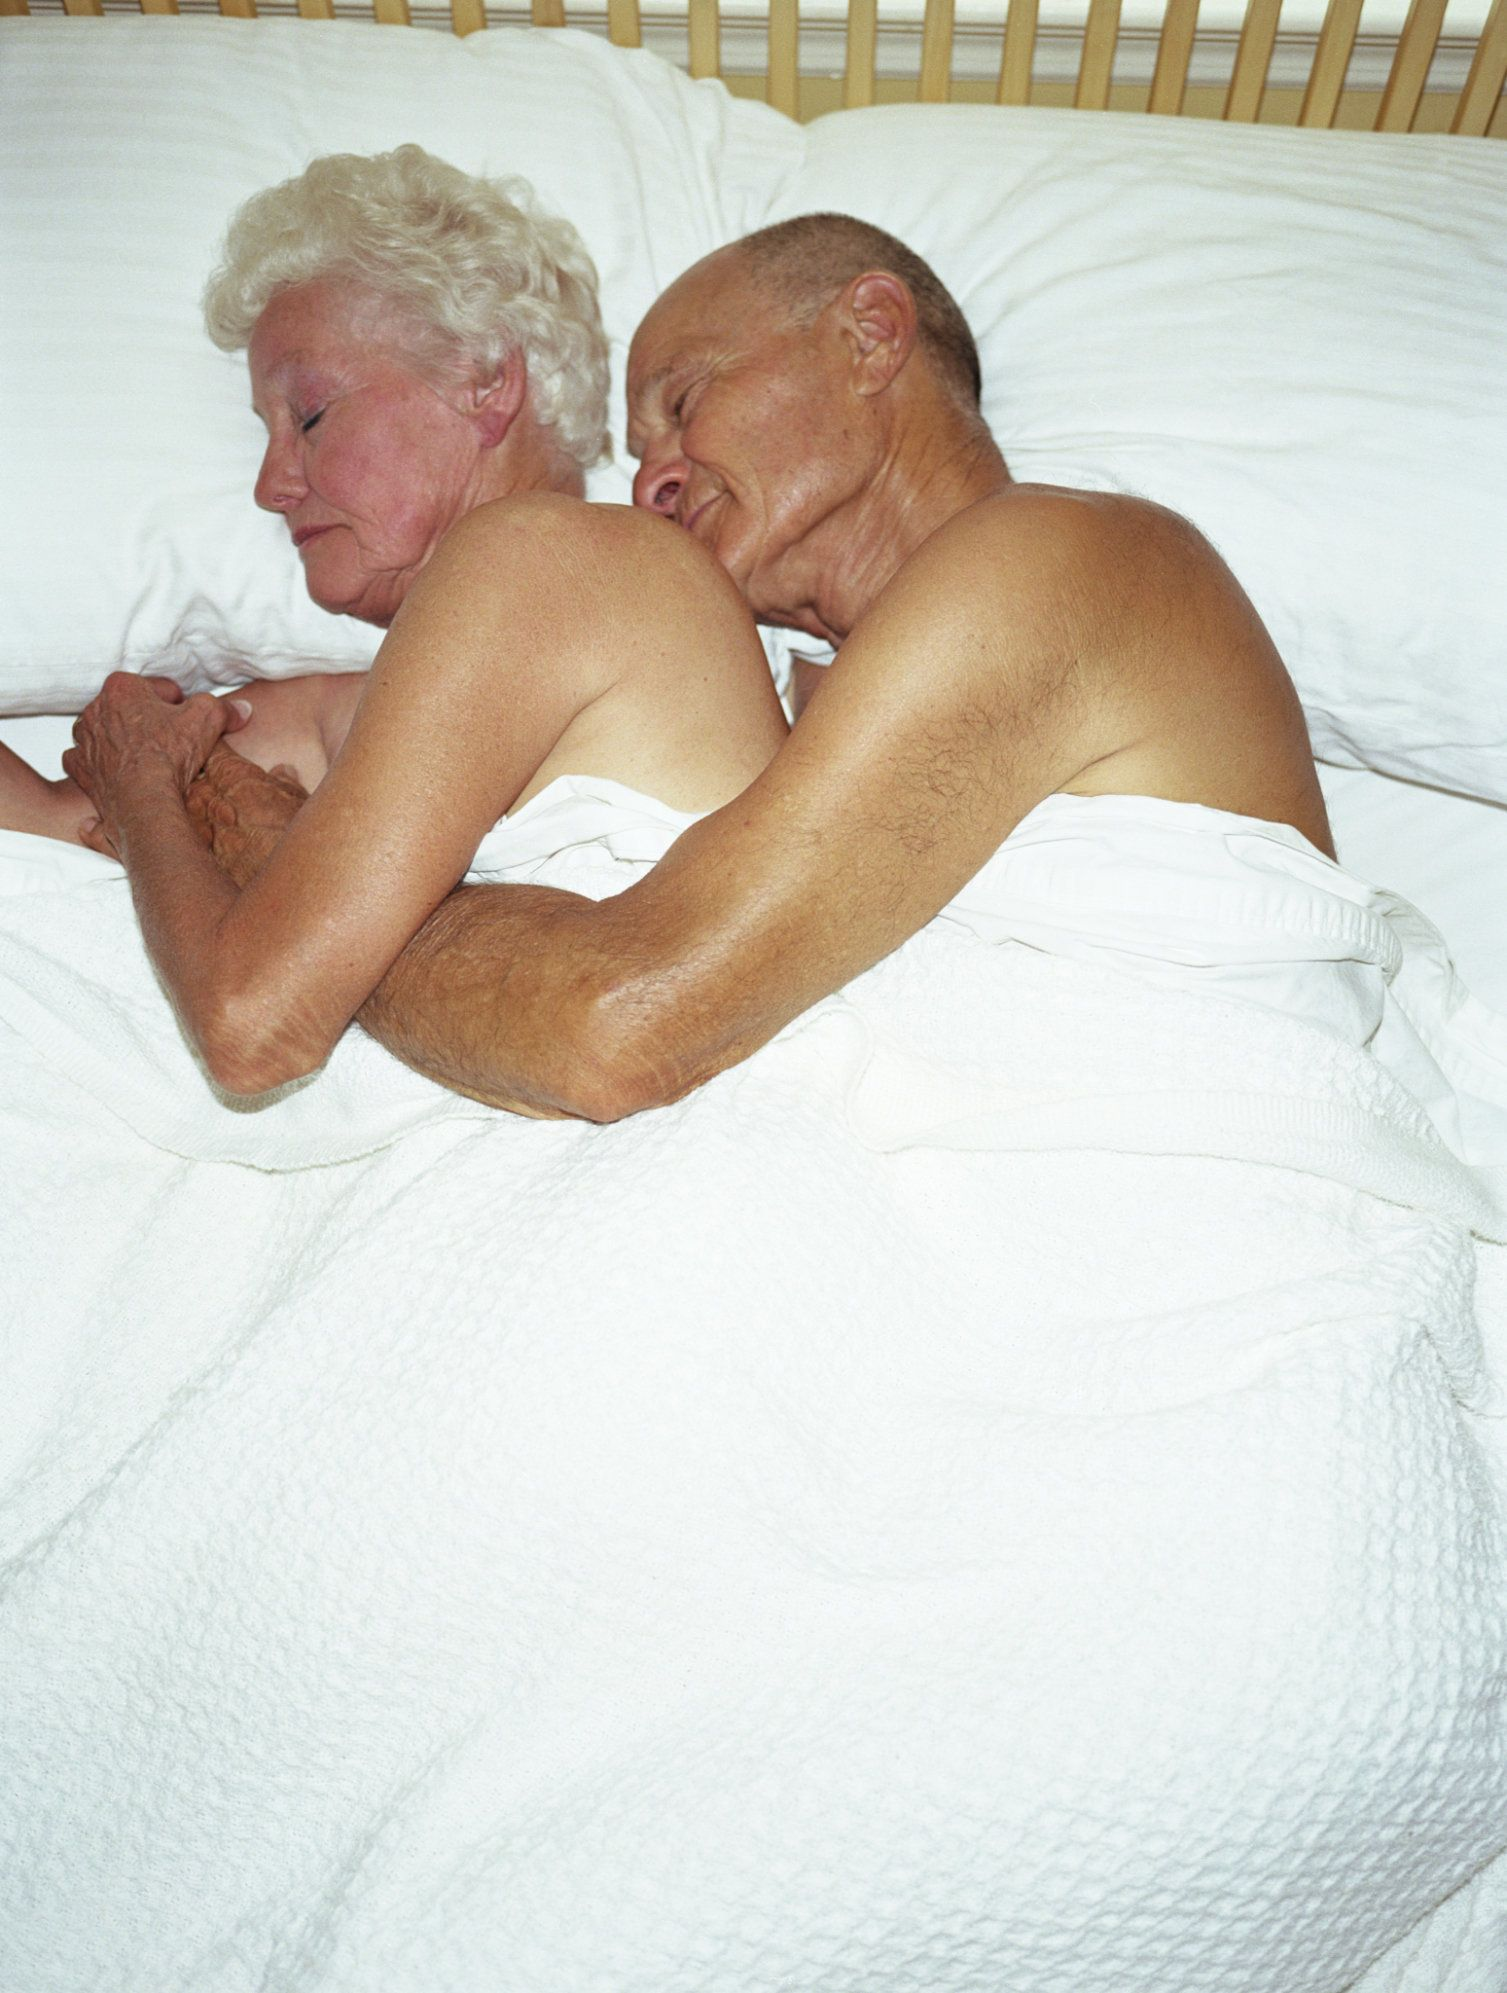 Sex photo for old women